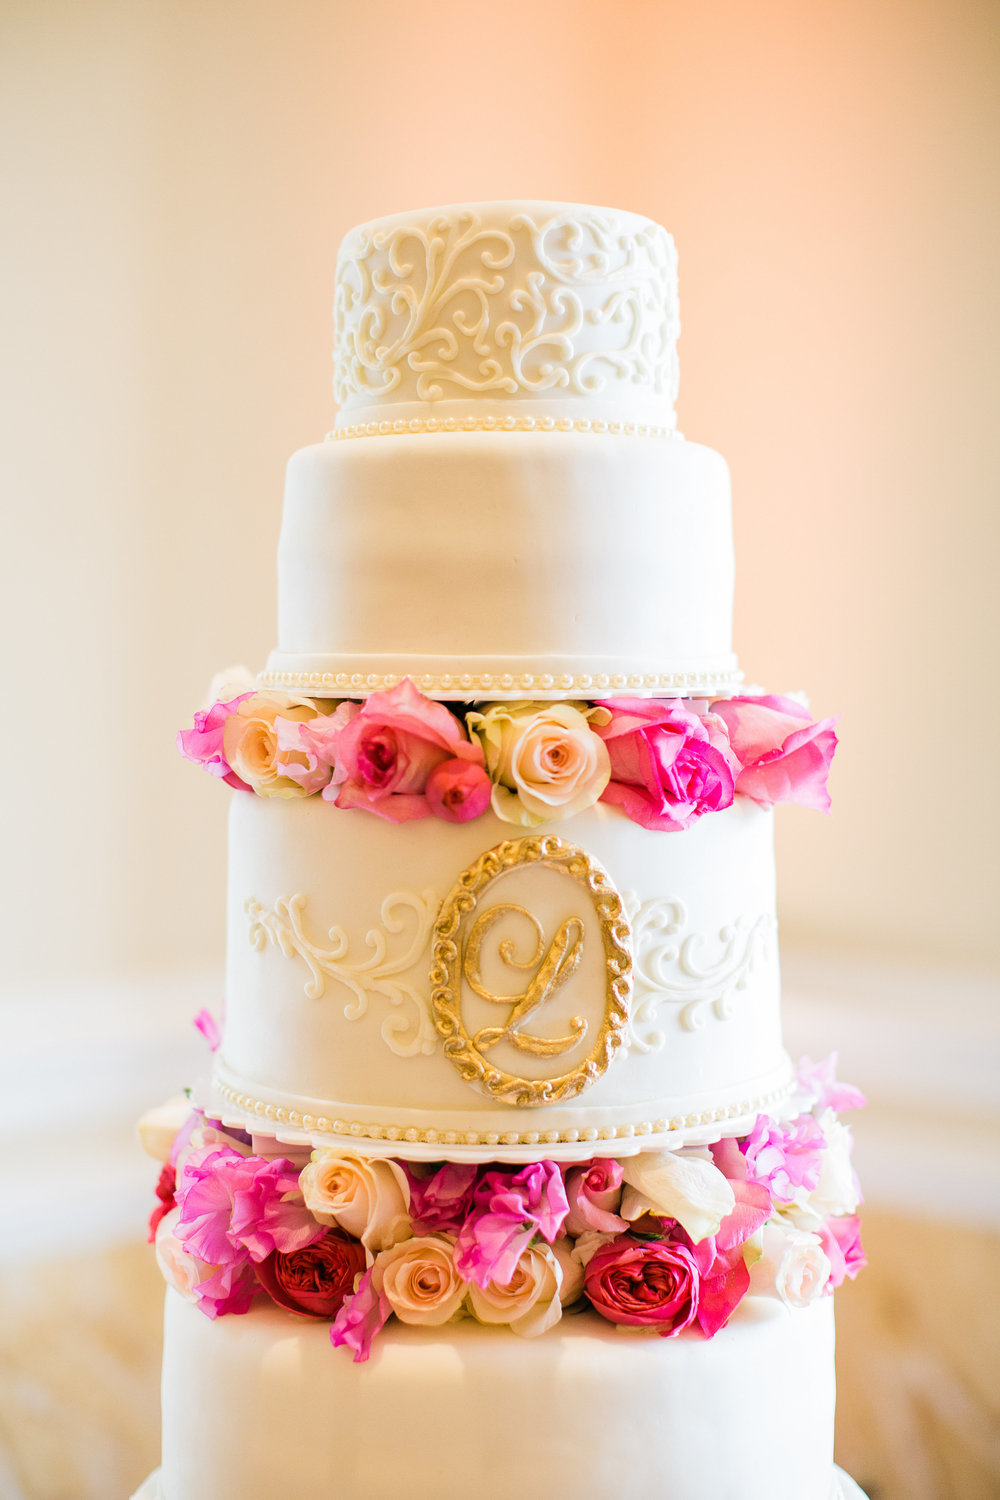 Wedding Cake with Rose Tiers | Edible Art Bakery of Raleigh